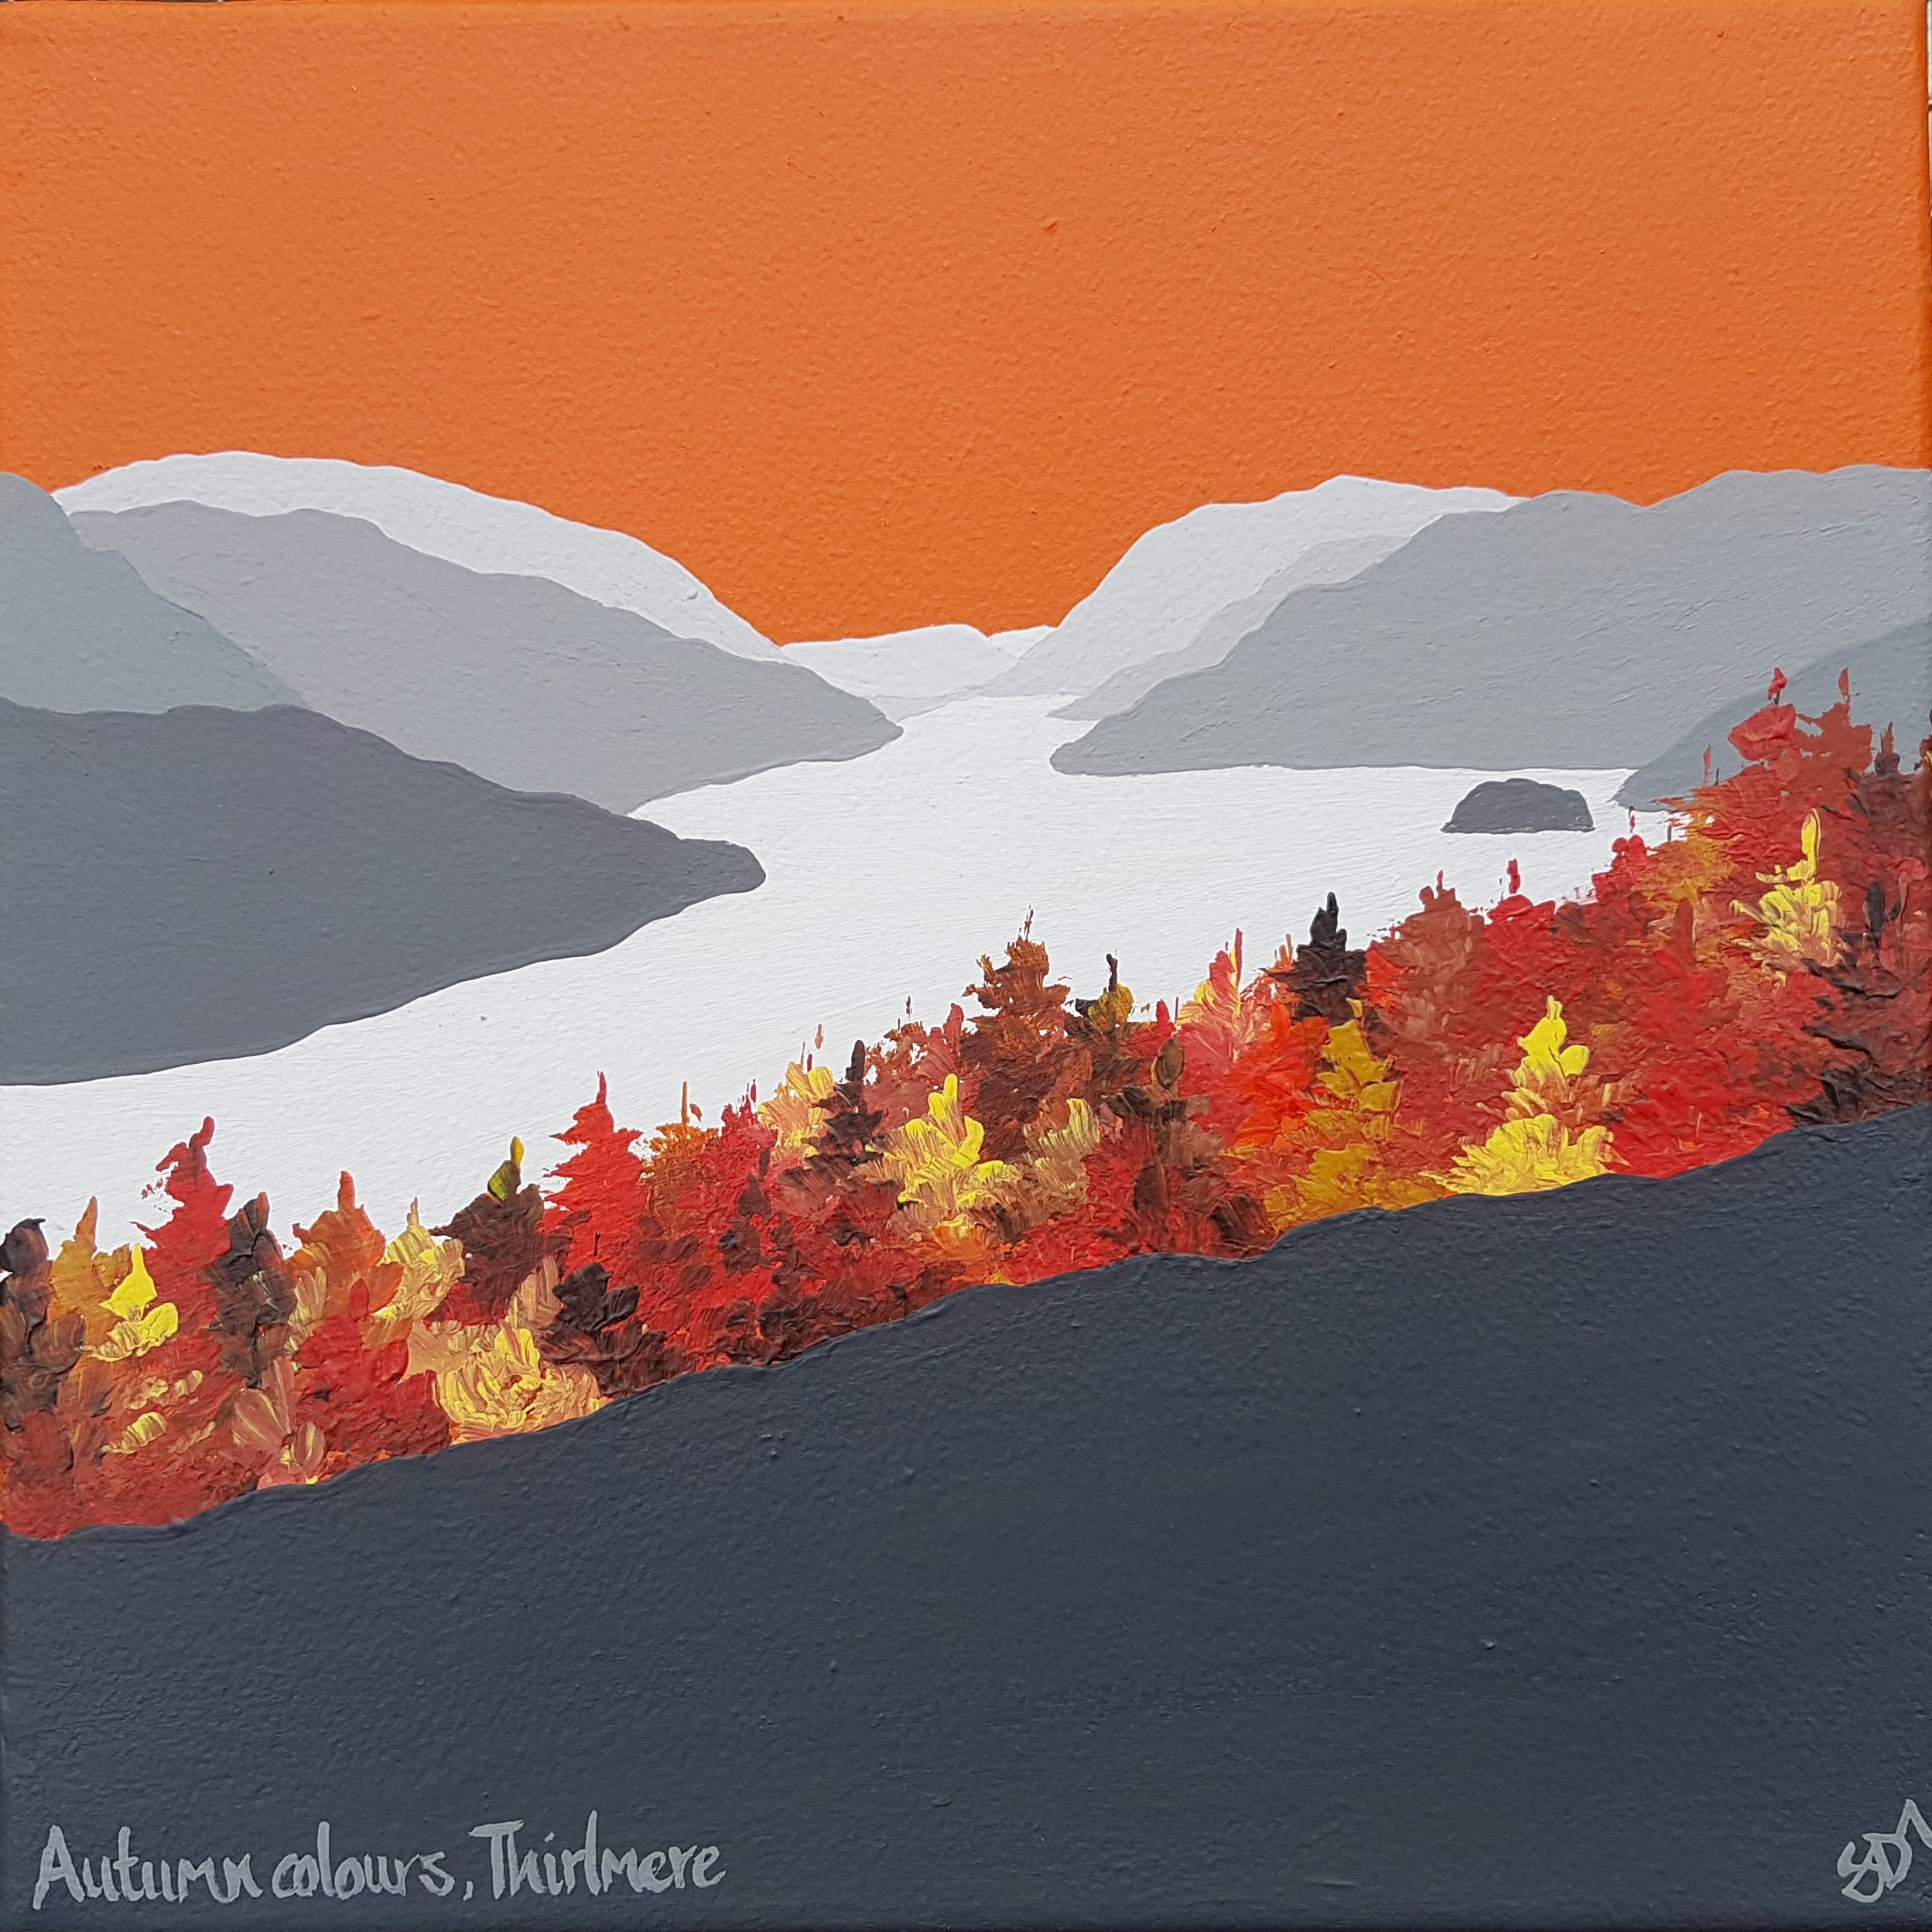 SOLD Autumn colours, Thirlmere